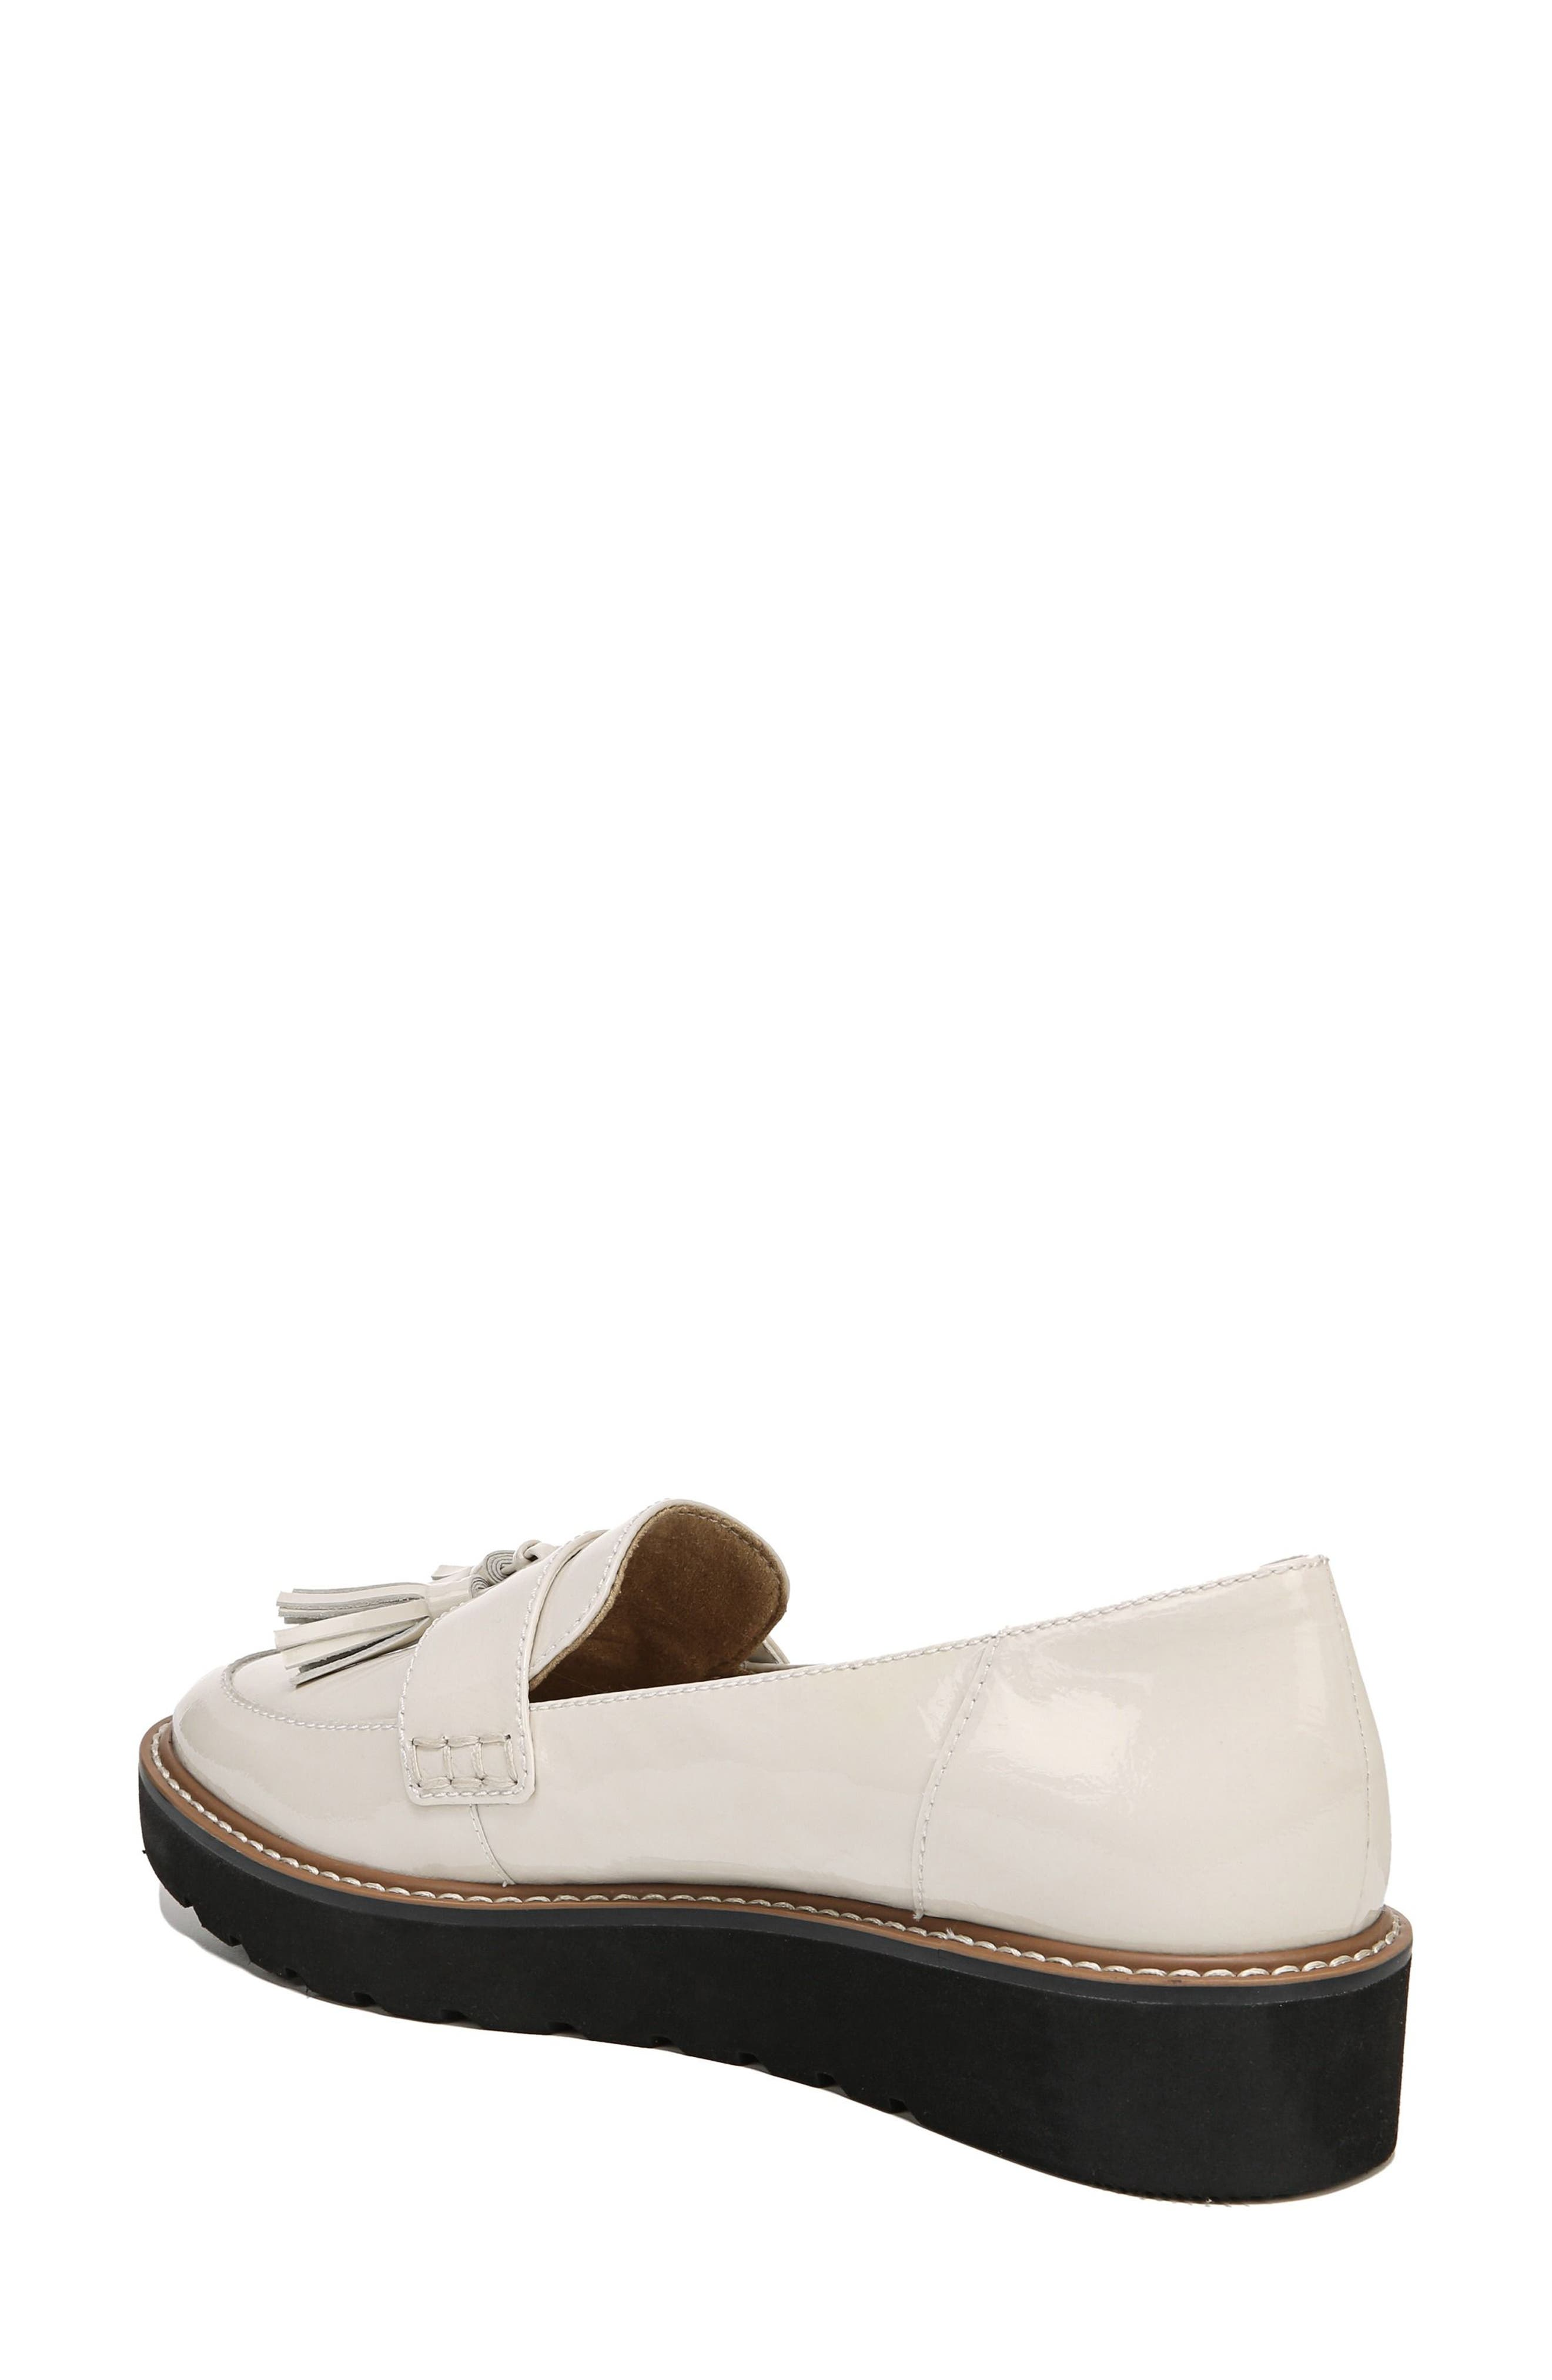 August Loafer,                             Alternate thumbnail 2, color,                             ALABASTER LEATHER